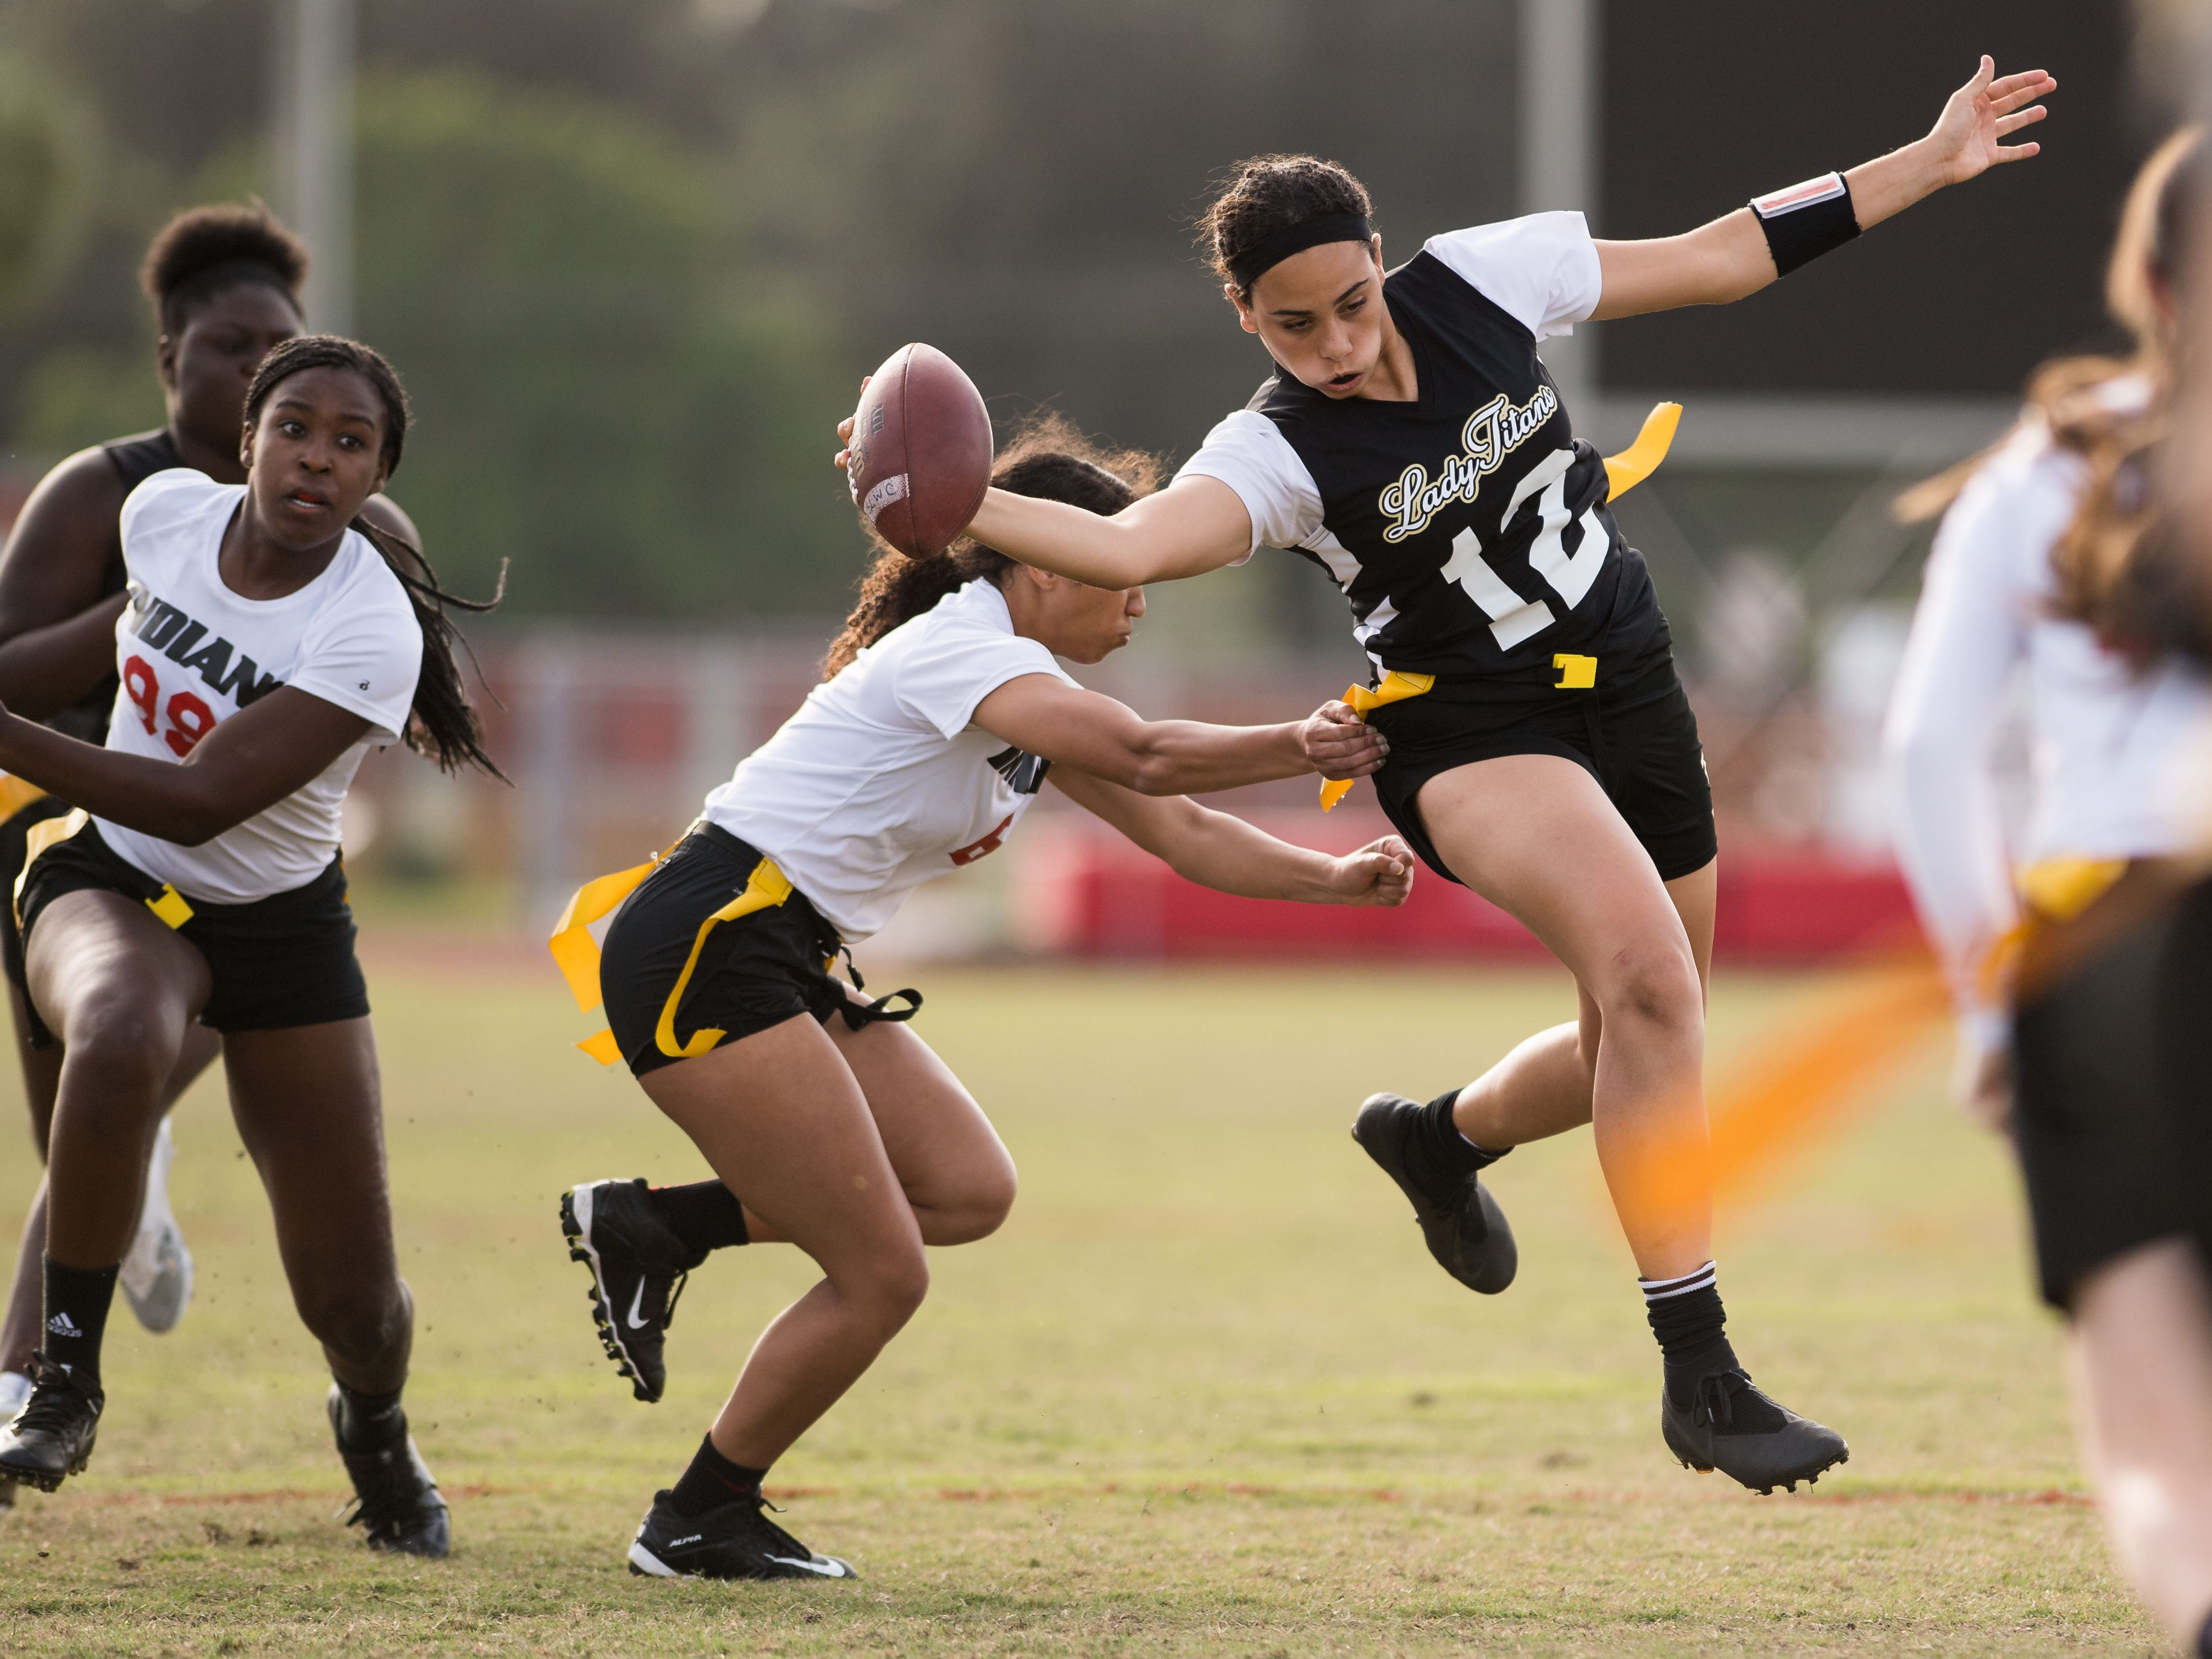 Treasure Coast quarterback Isabella Hernandez leaps to avoid Vero Beach defenders to gain extra yards in the second quarter of the high school flag football game Wednesday, March 13, 2019, at Vero Beach High School.